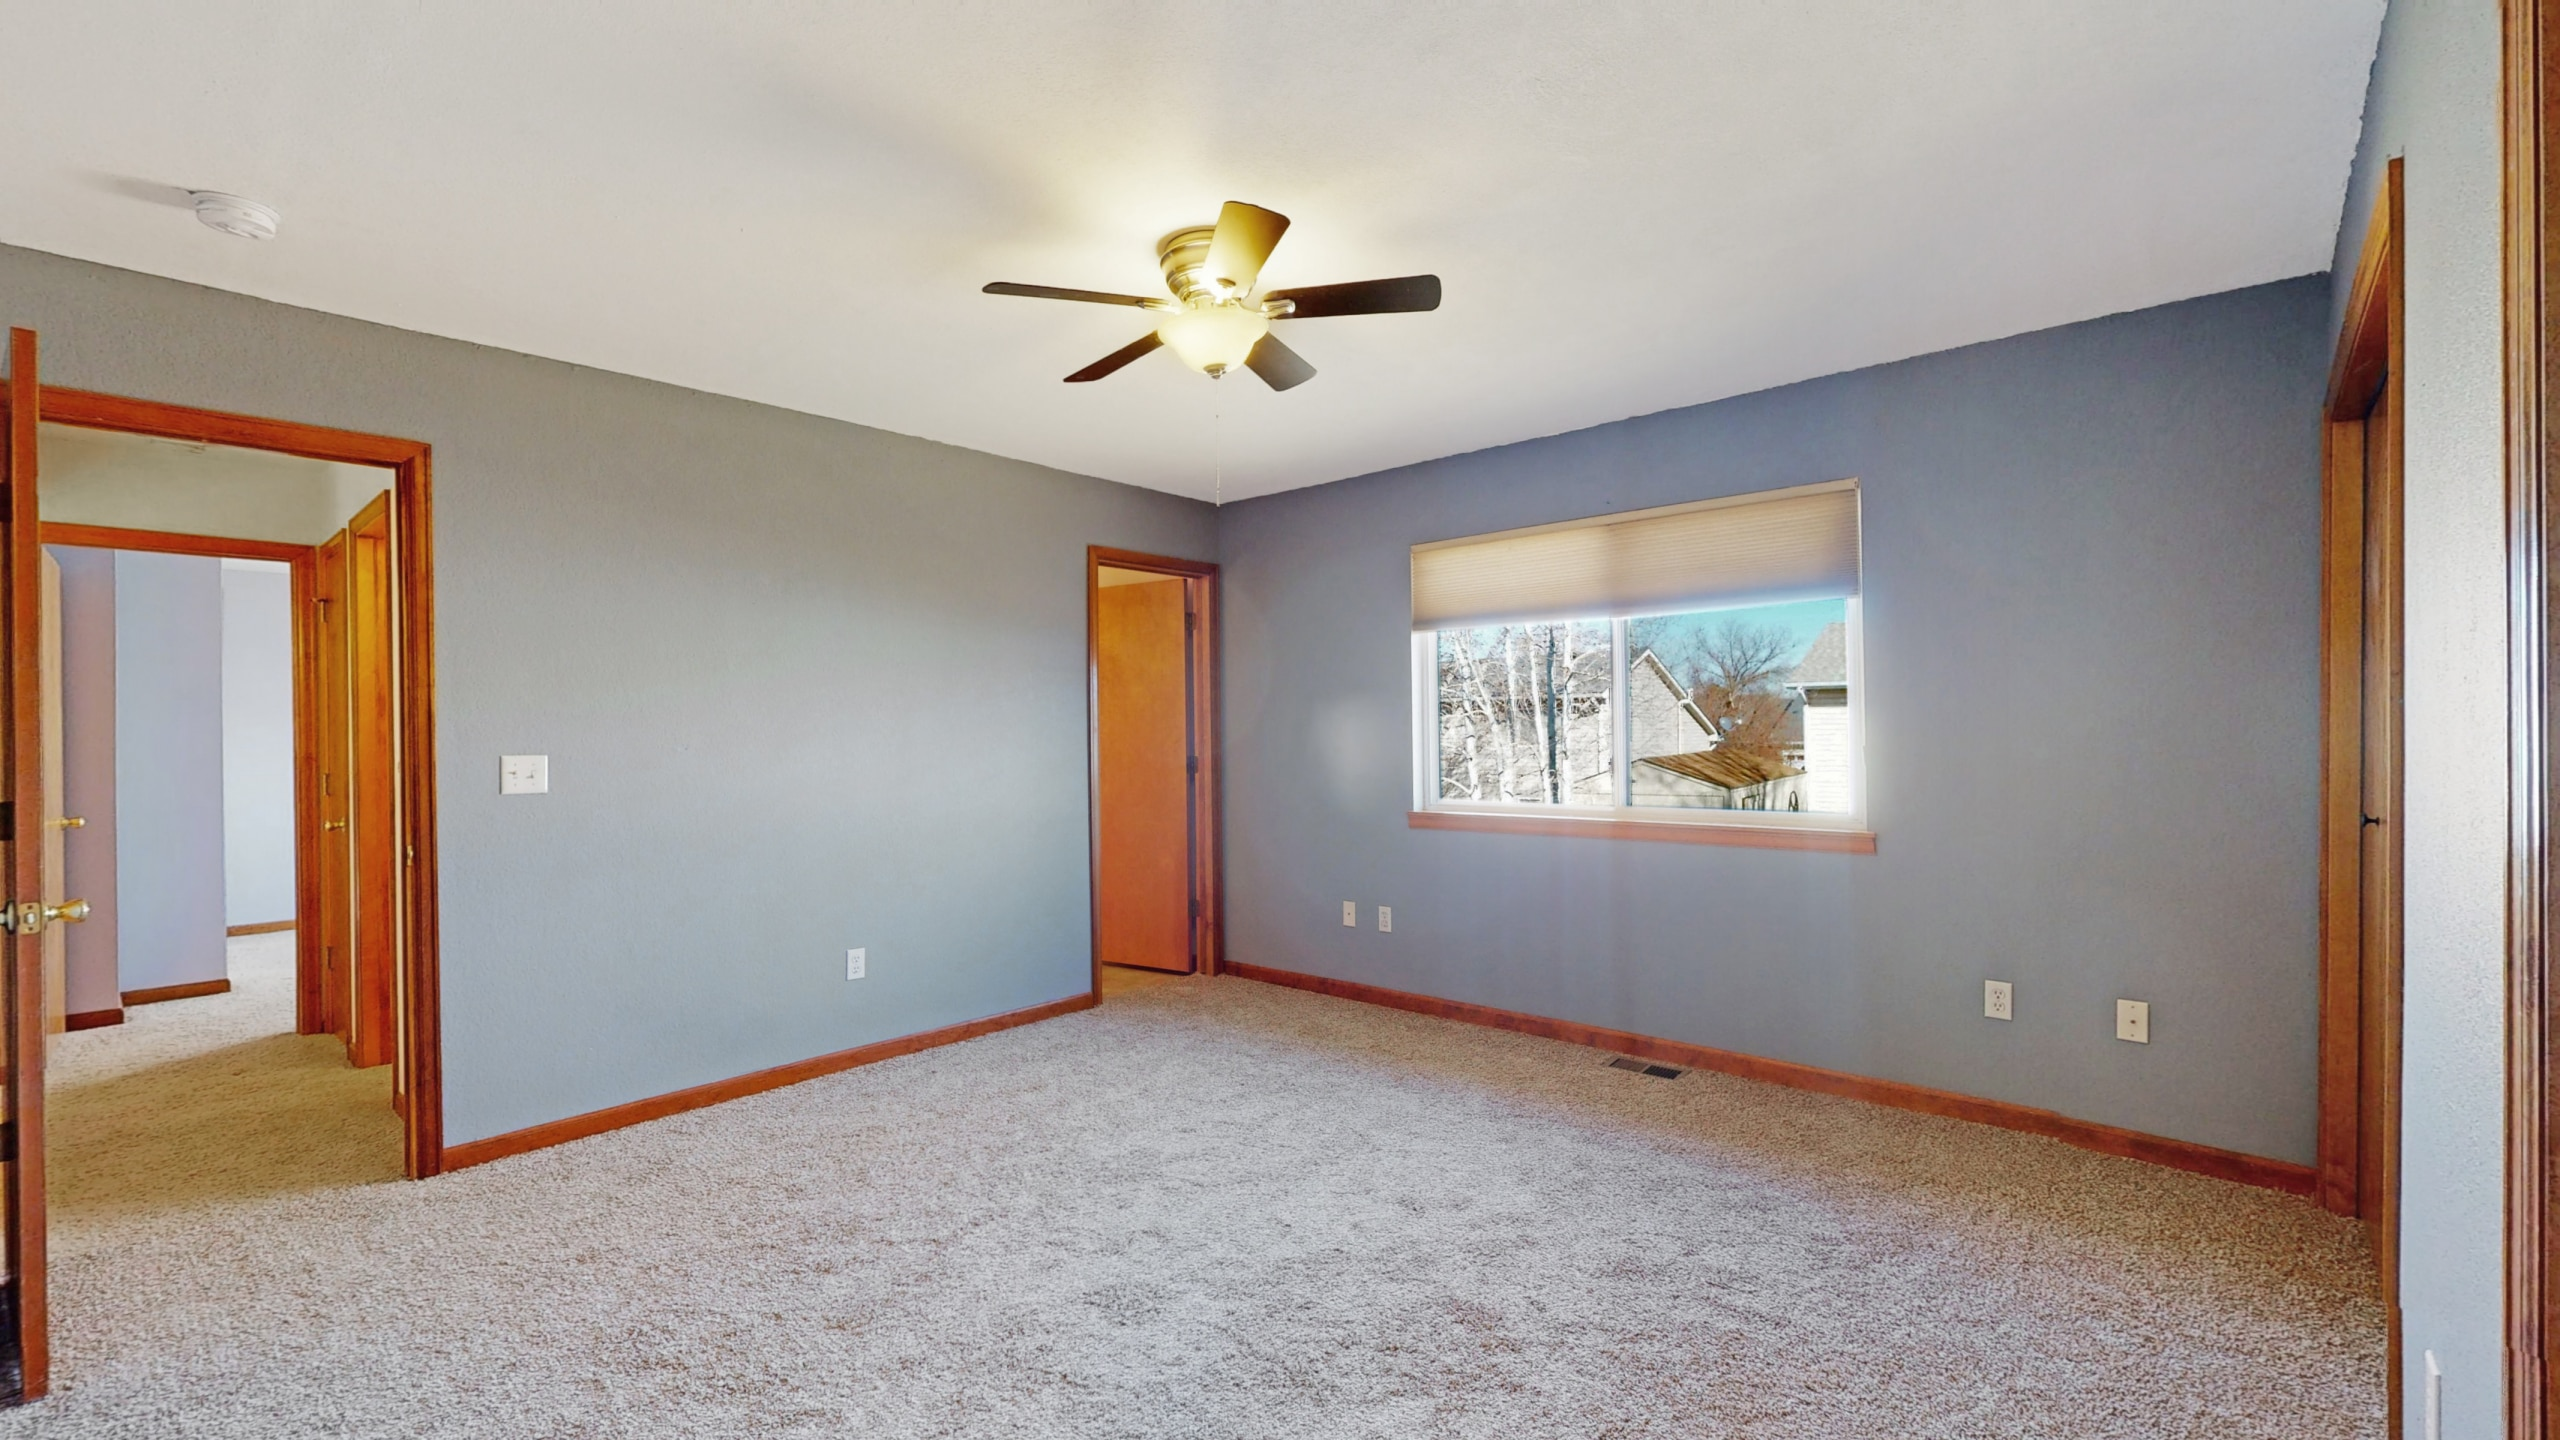 Master bedroom blue walls with gorgeous wood trim